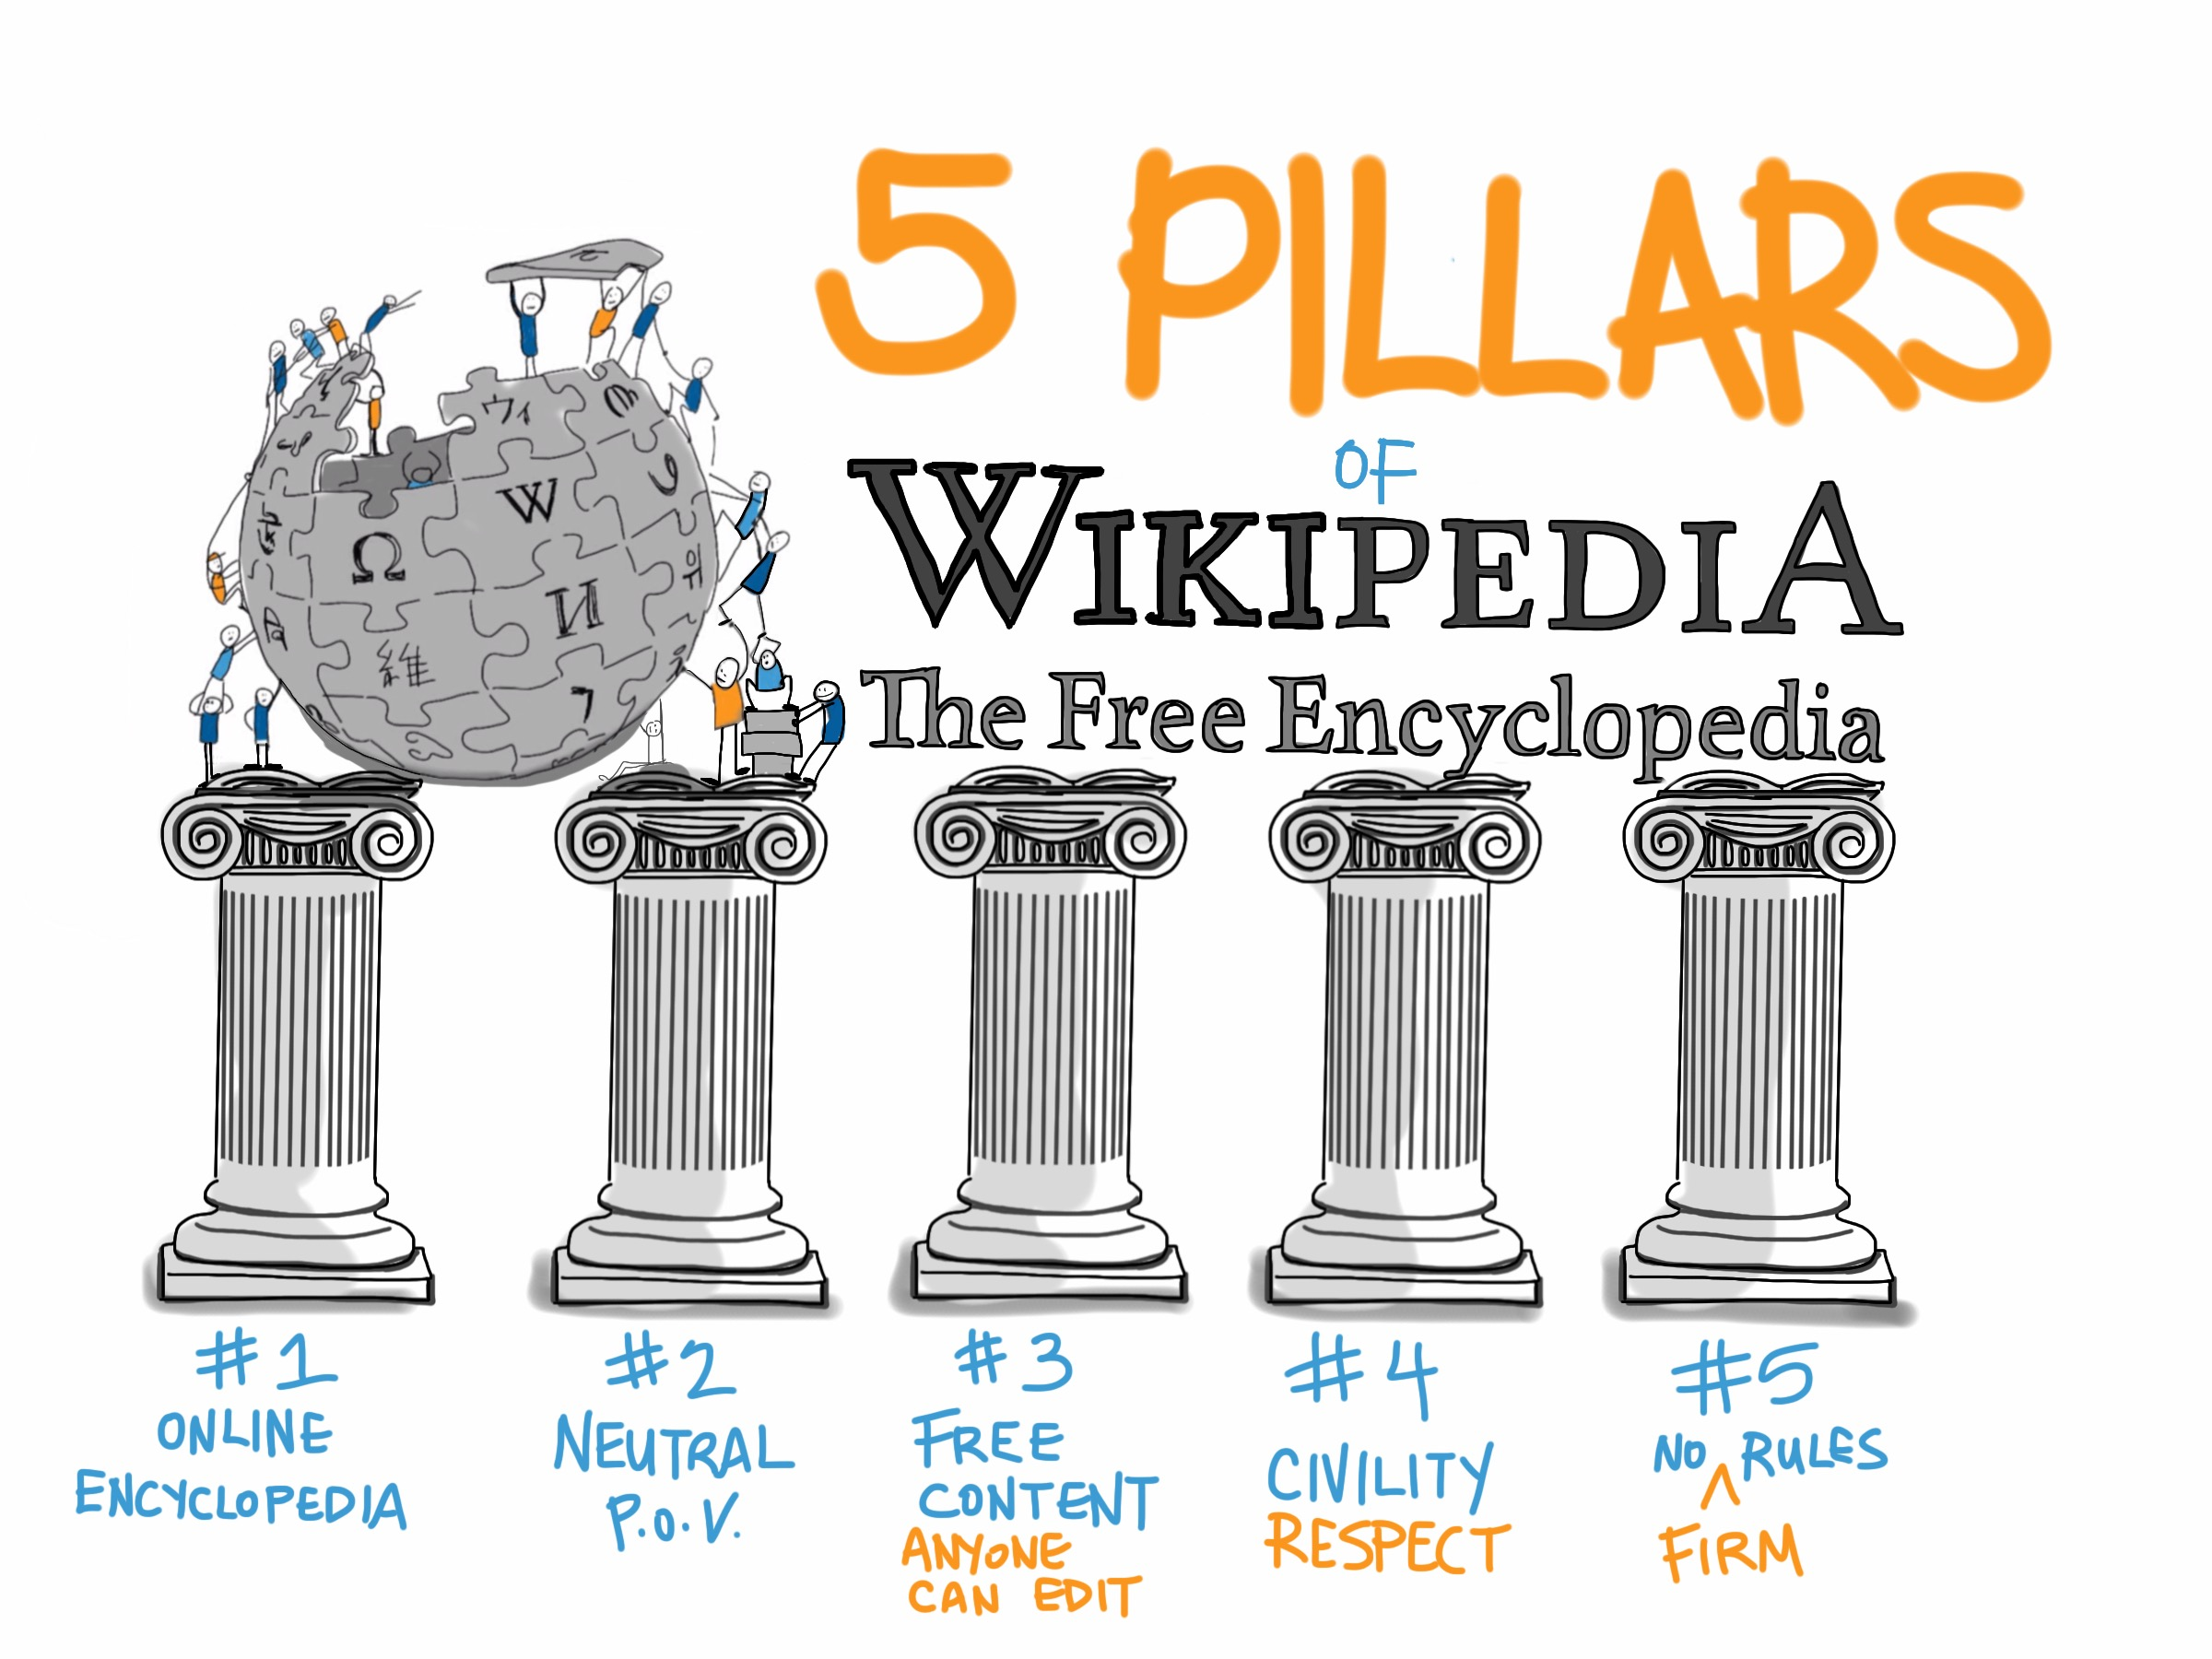 5 Pillar of Wikipedia